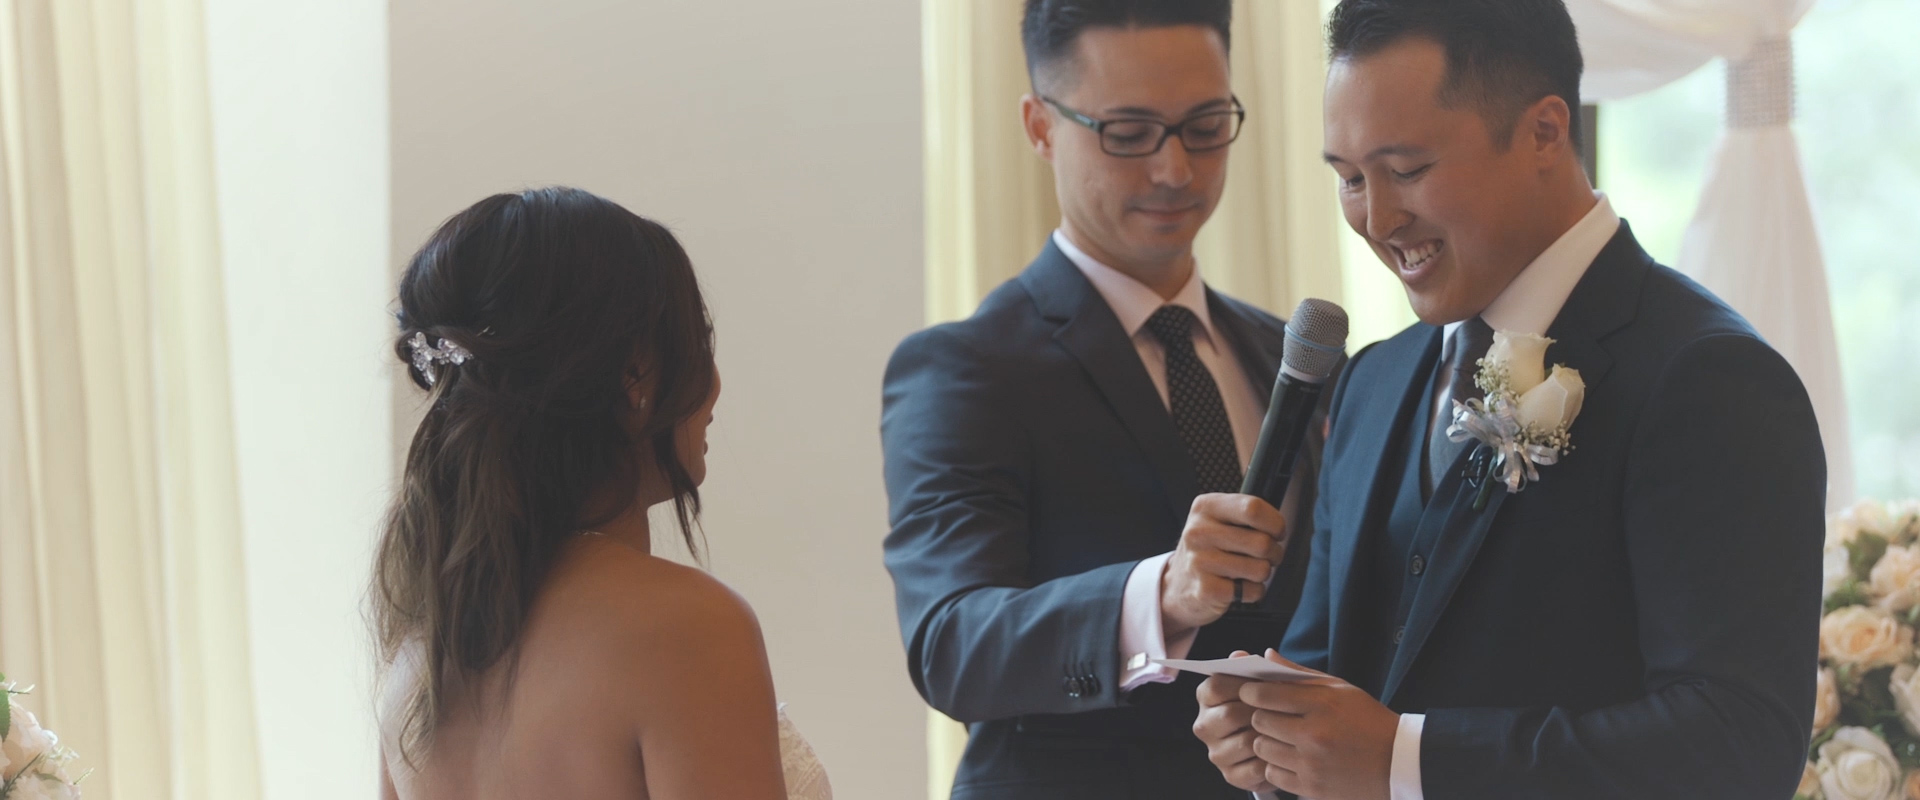 An image of a groom reciting his vows at his wedding ceremony; taken from a Toronto Wedding Video